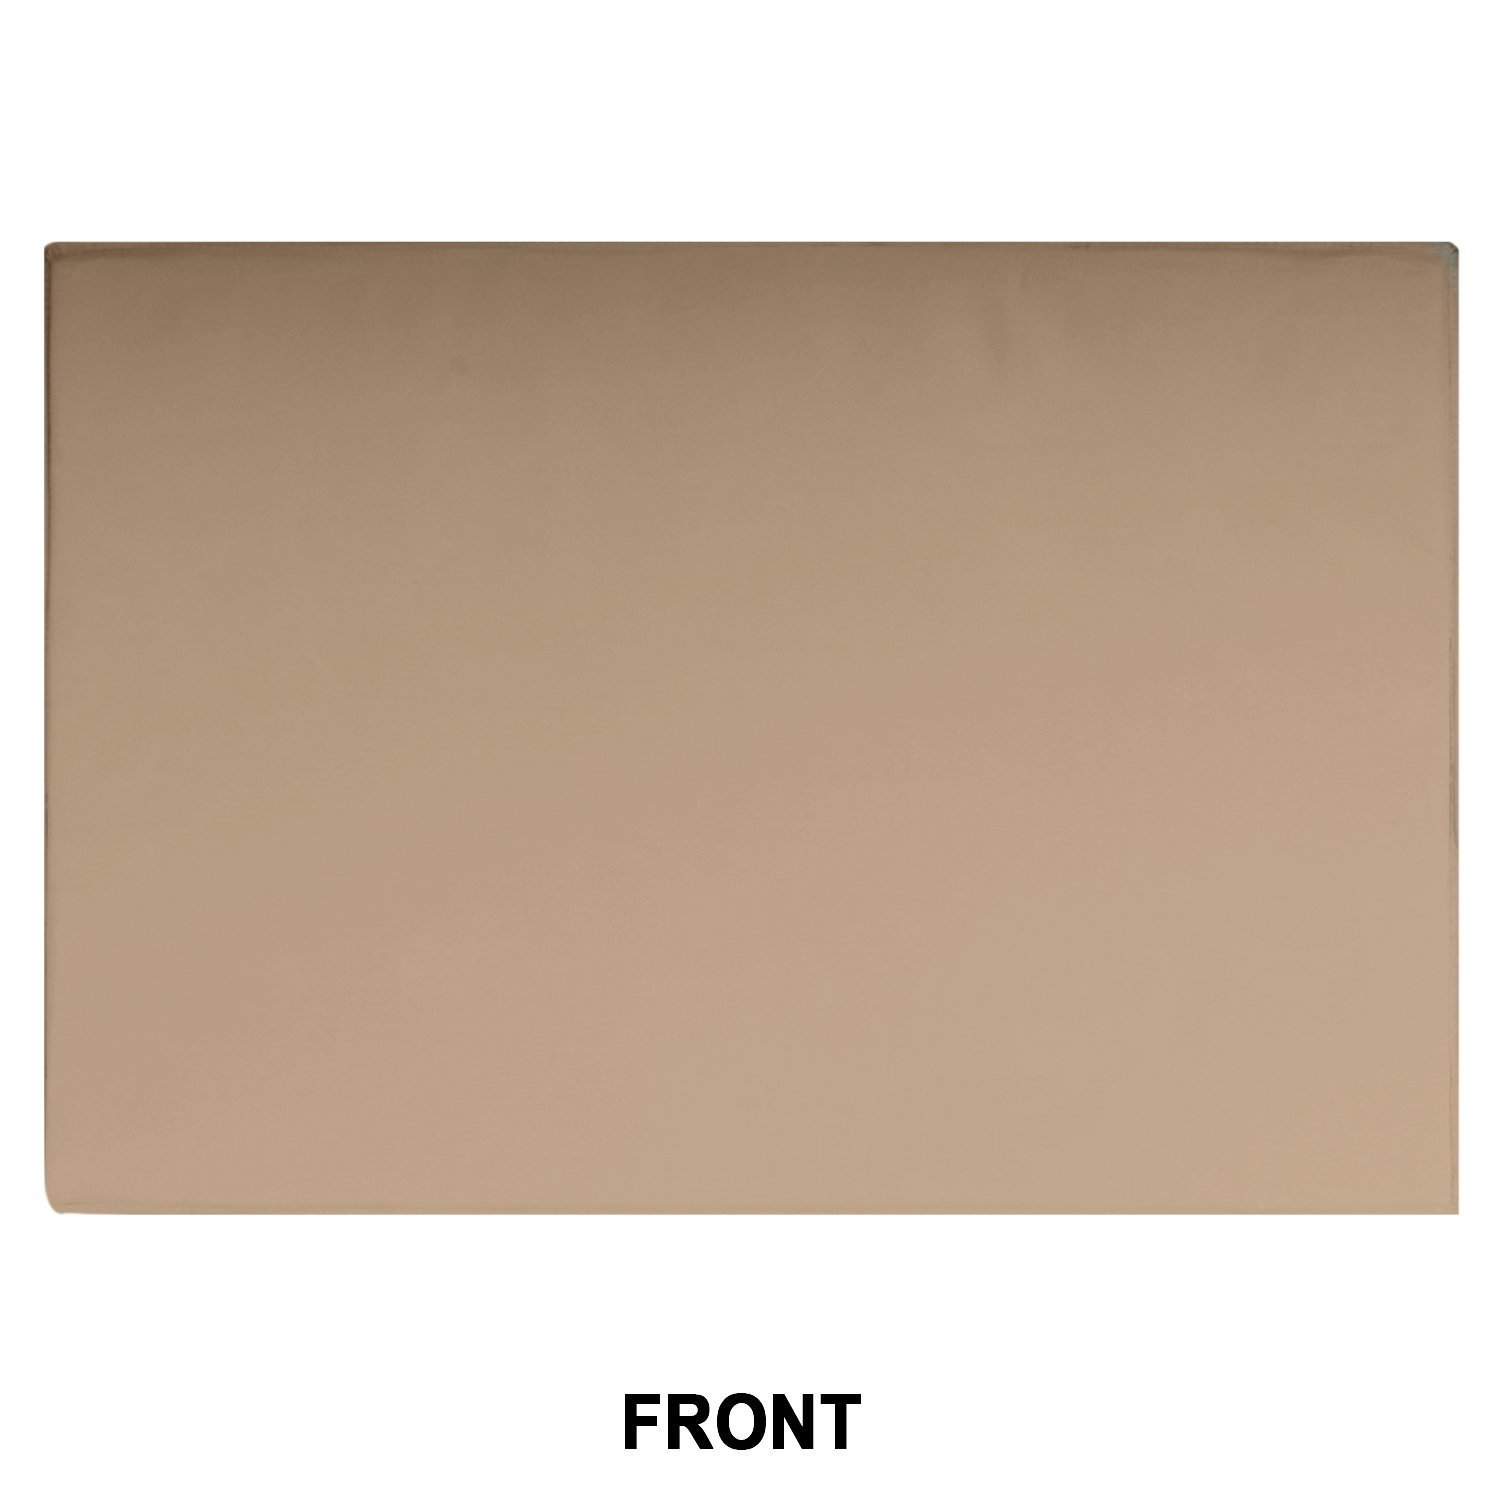 Outdoor TV Cover, Brown Universal Weatherproof Protector for 50'' - 52'' TV - Fits Most Mounts & Brackets by KHOMO GEAR (Image #4)